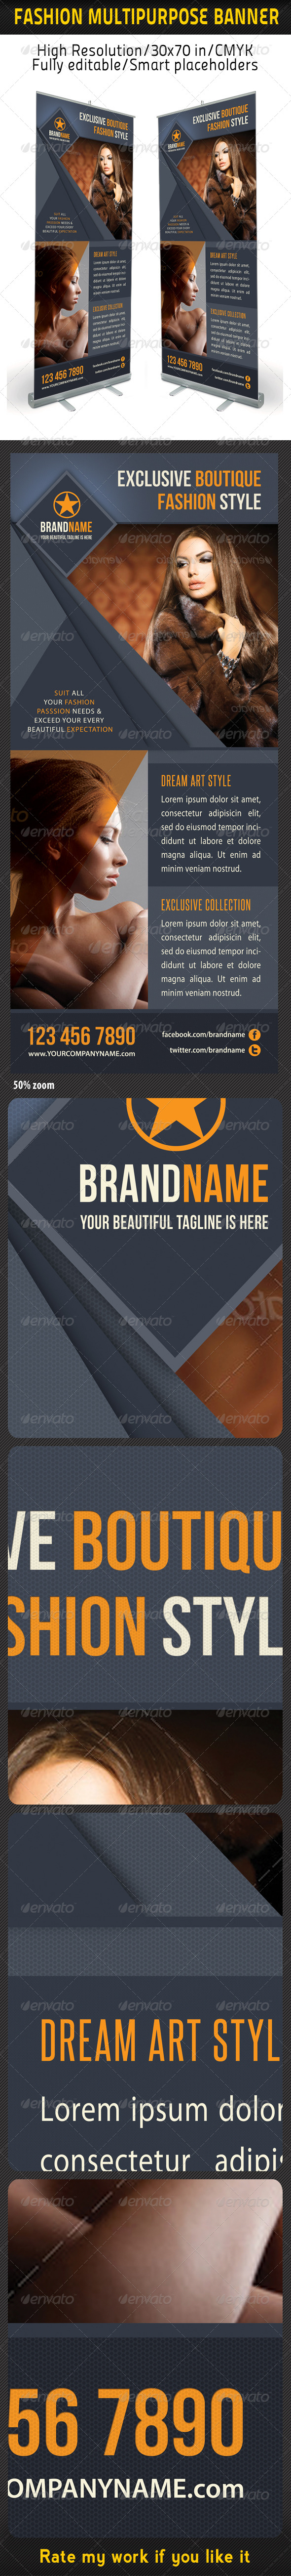 Fashion Multipurpose Banner Template 18 - Signage Print Templates